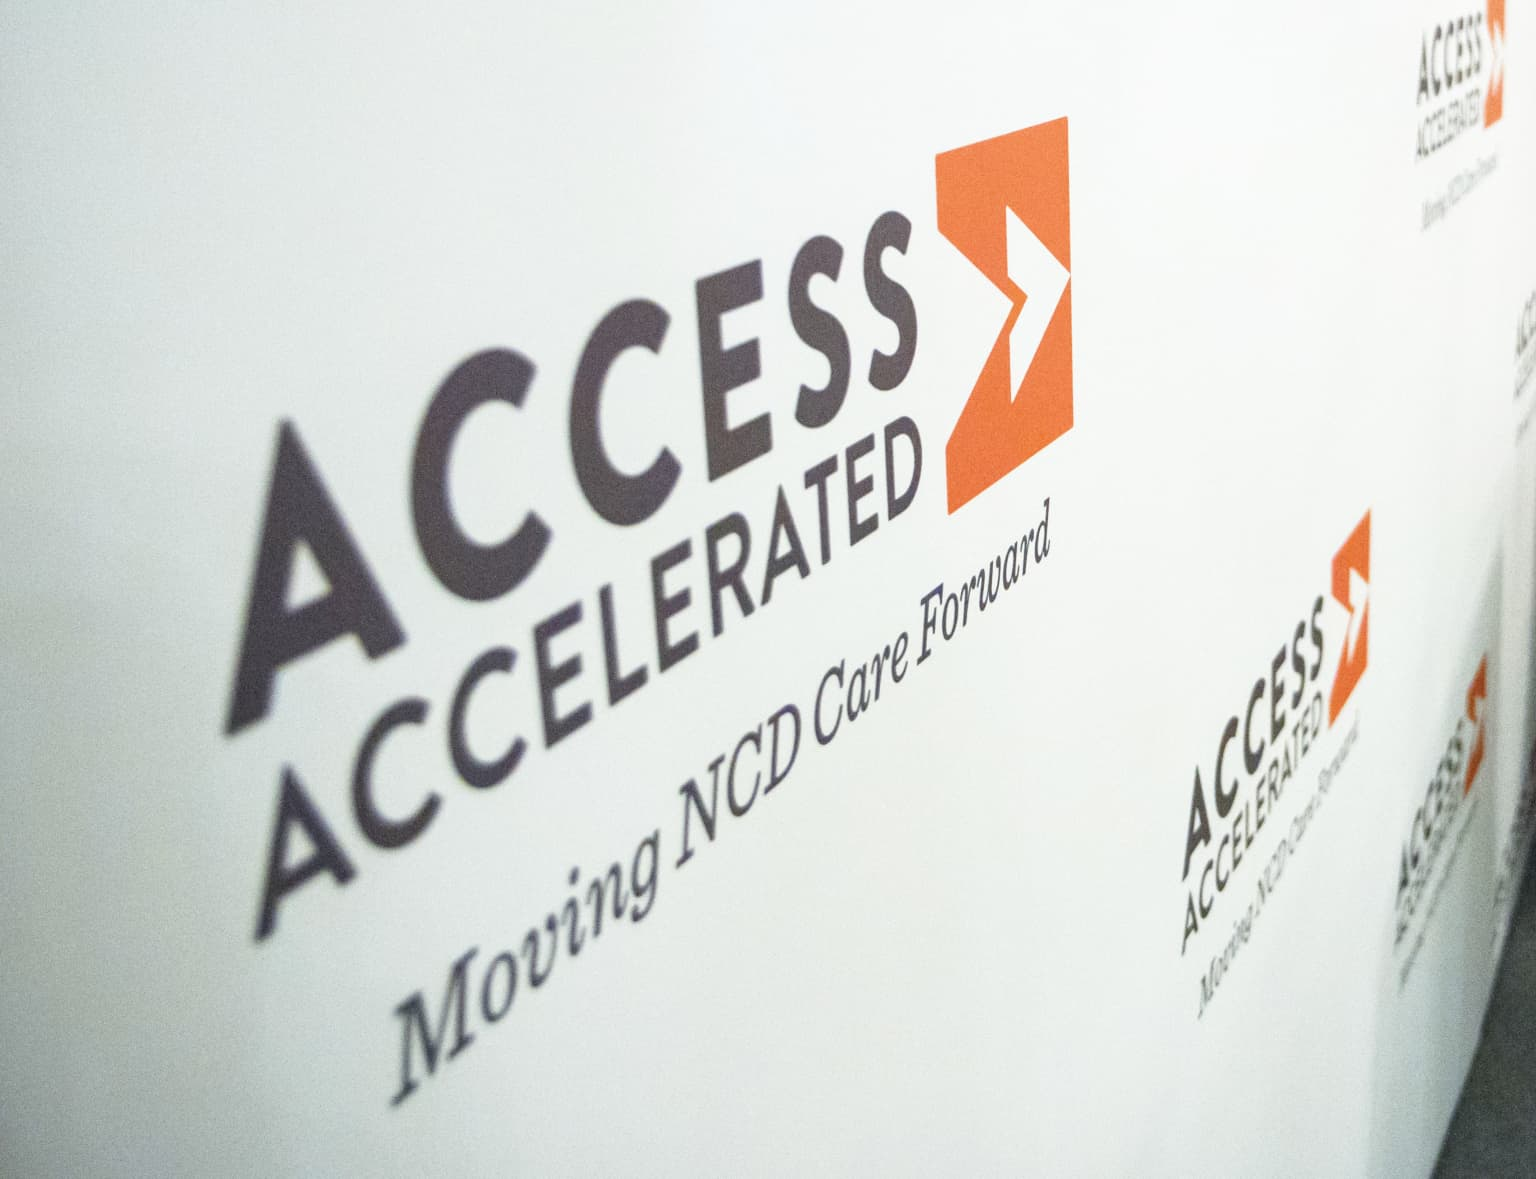 Access Accelerated